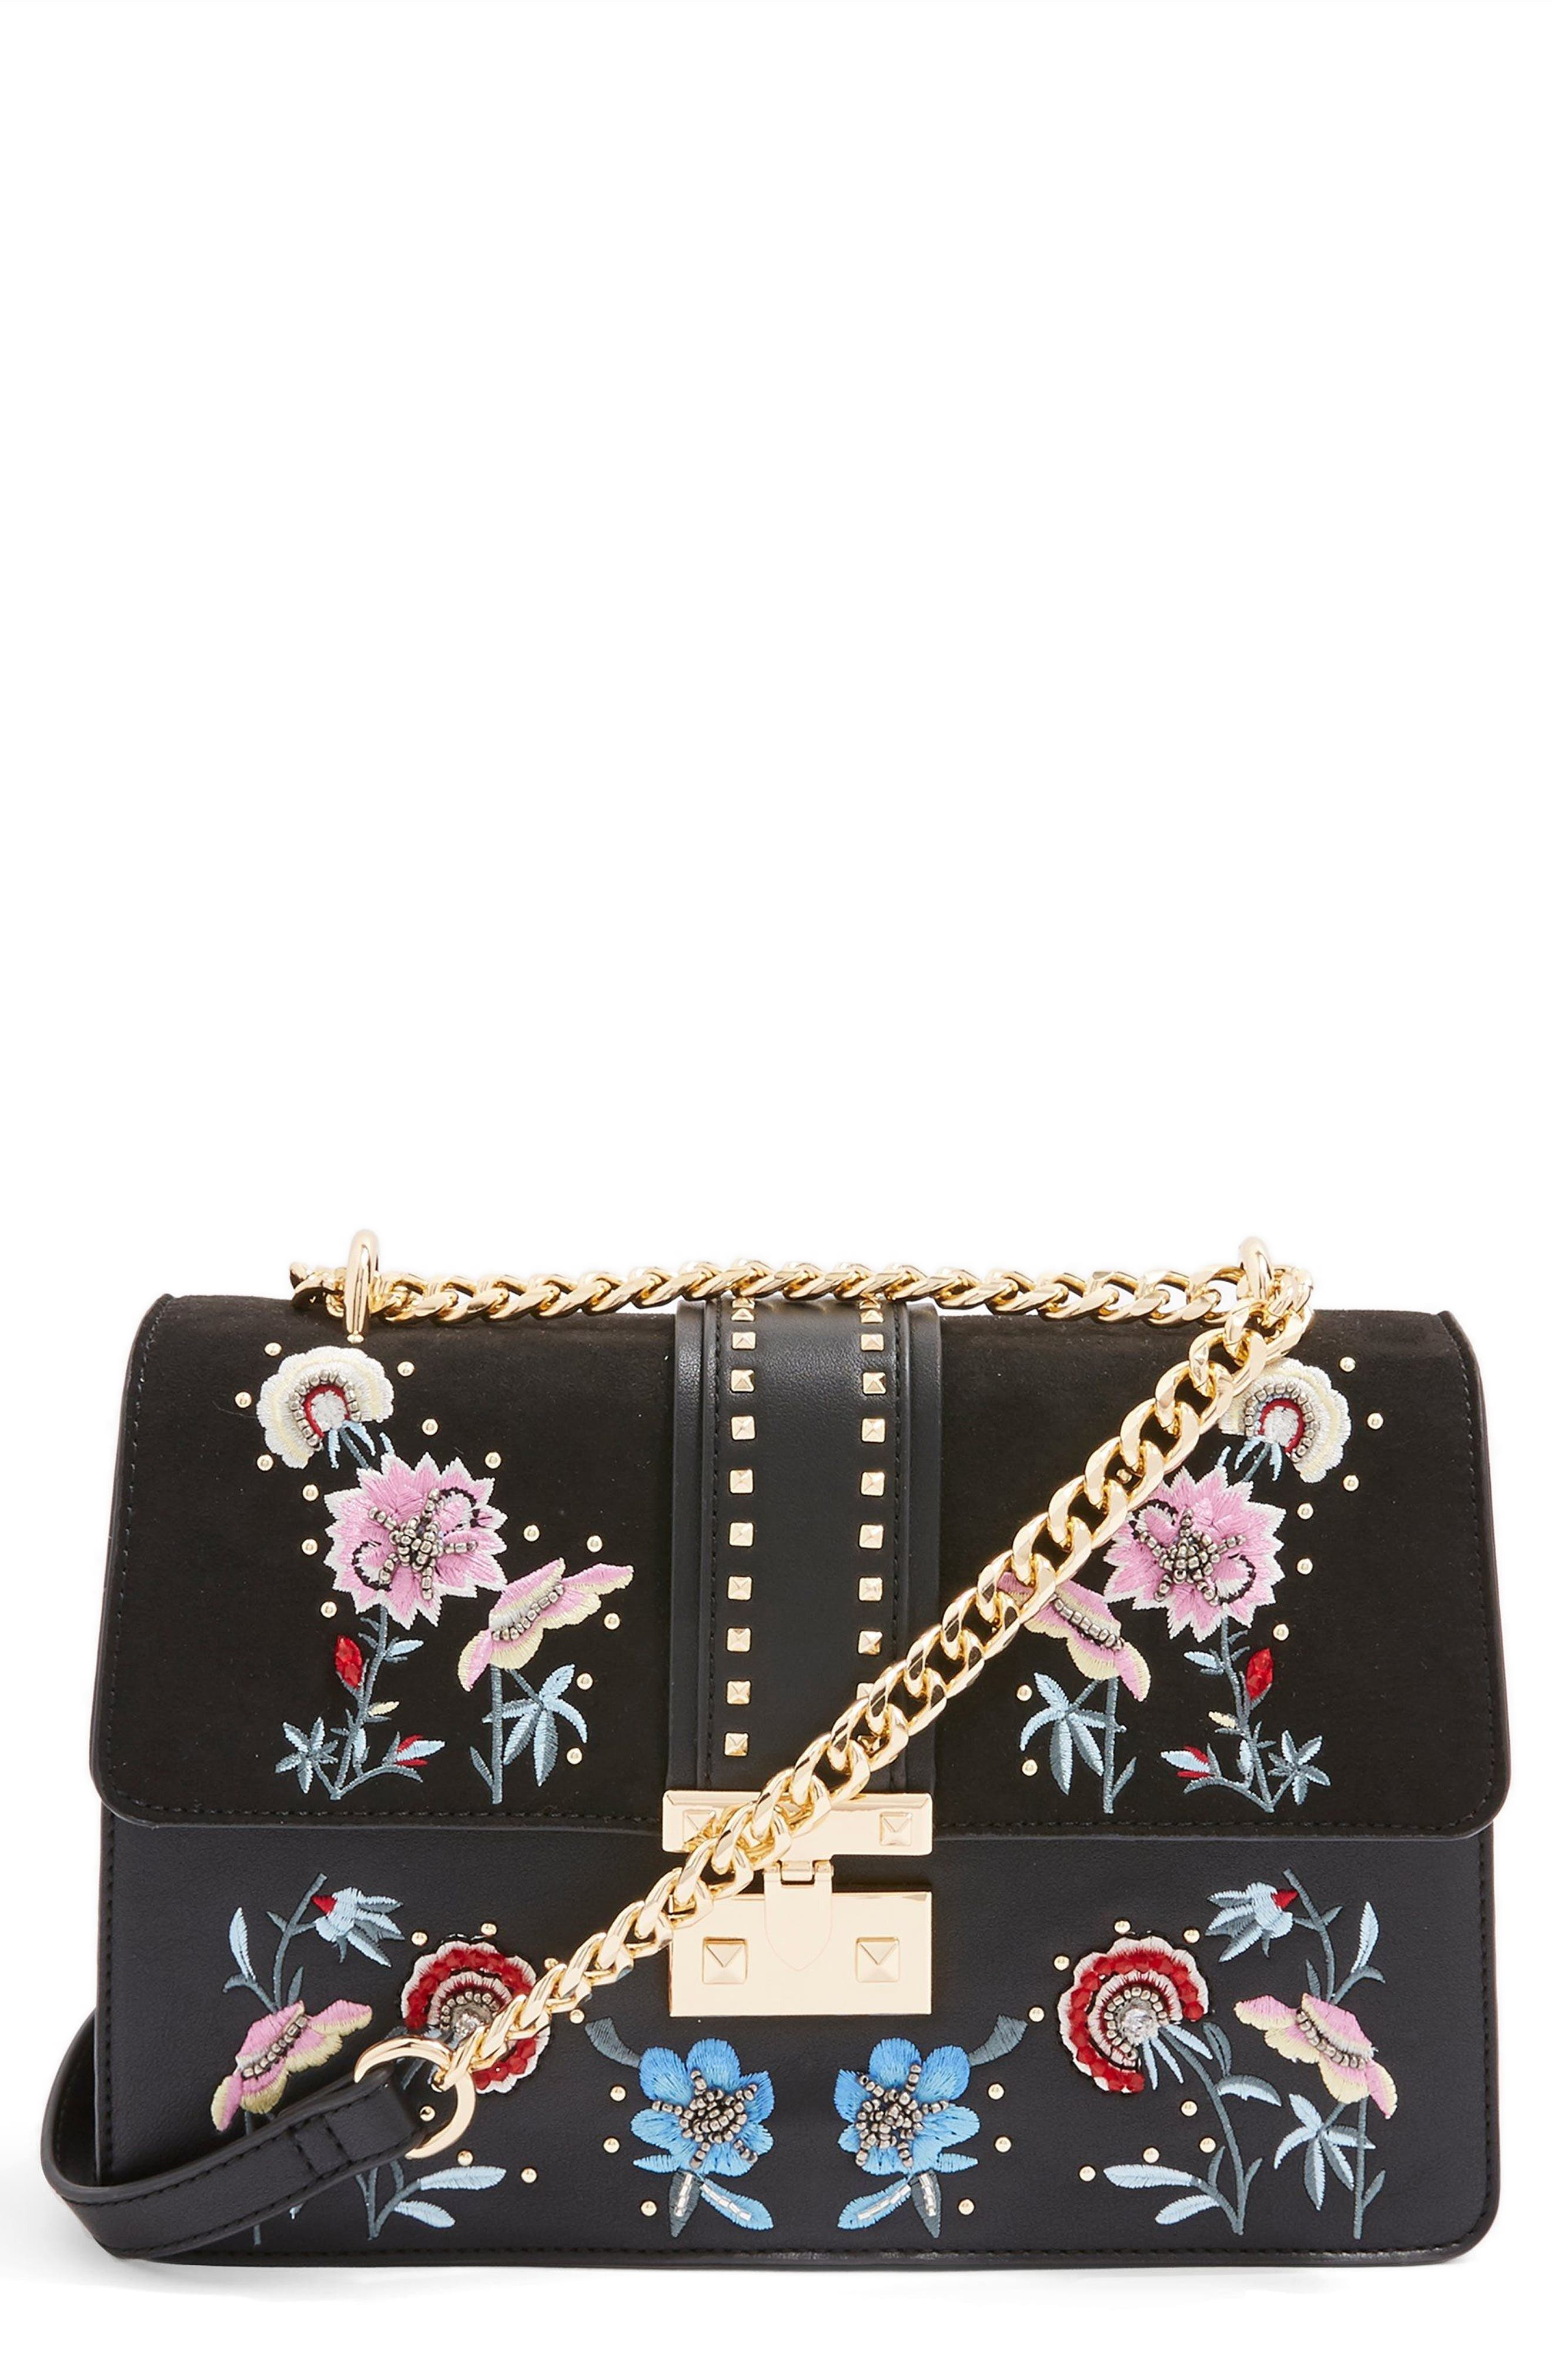 Darcy Floral Shoulder Bag,                             Main thumbnail 1, color,                             001